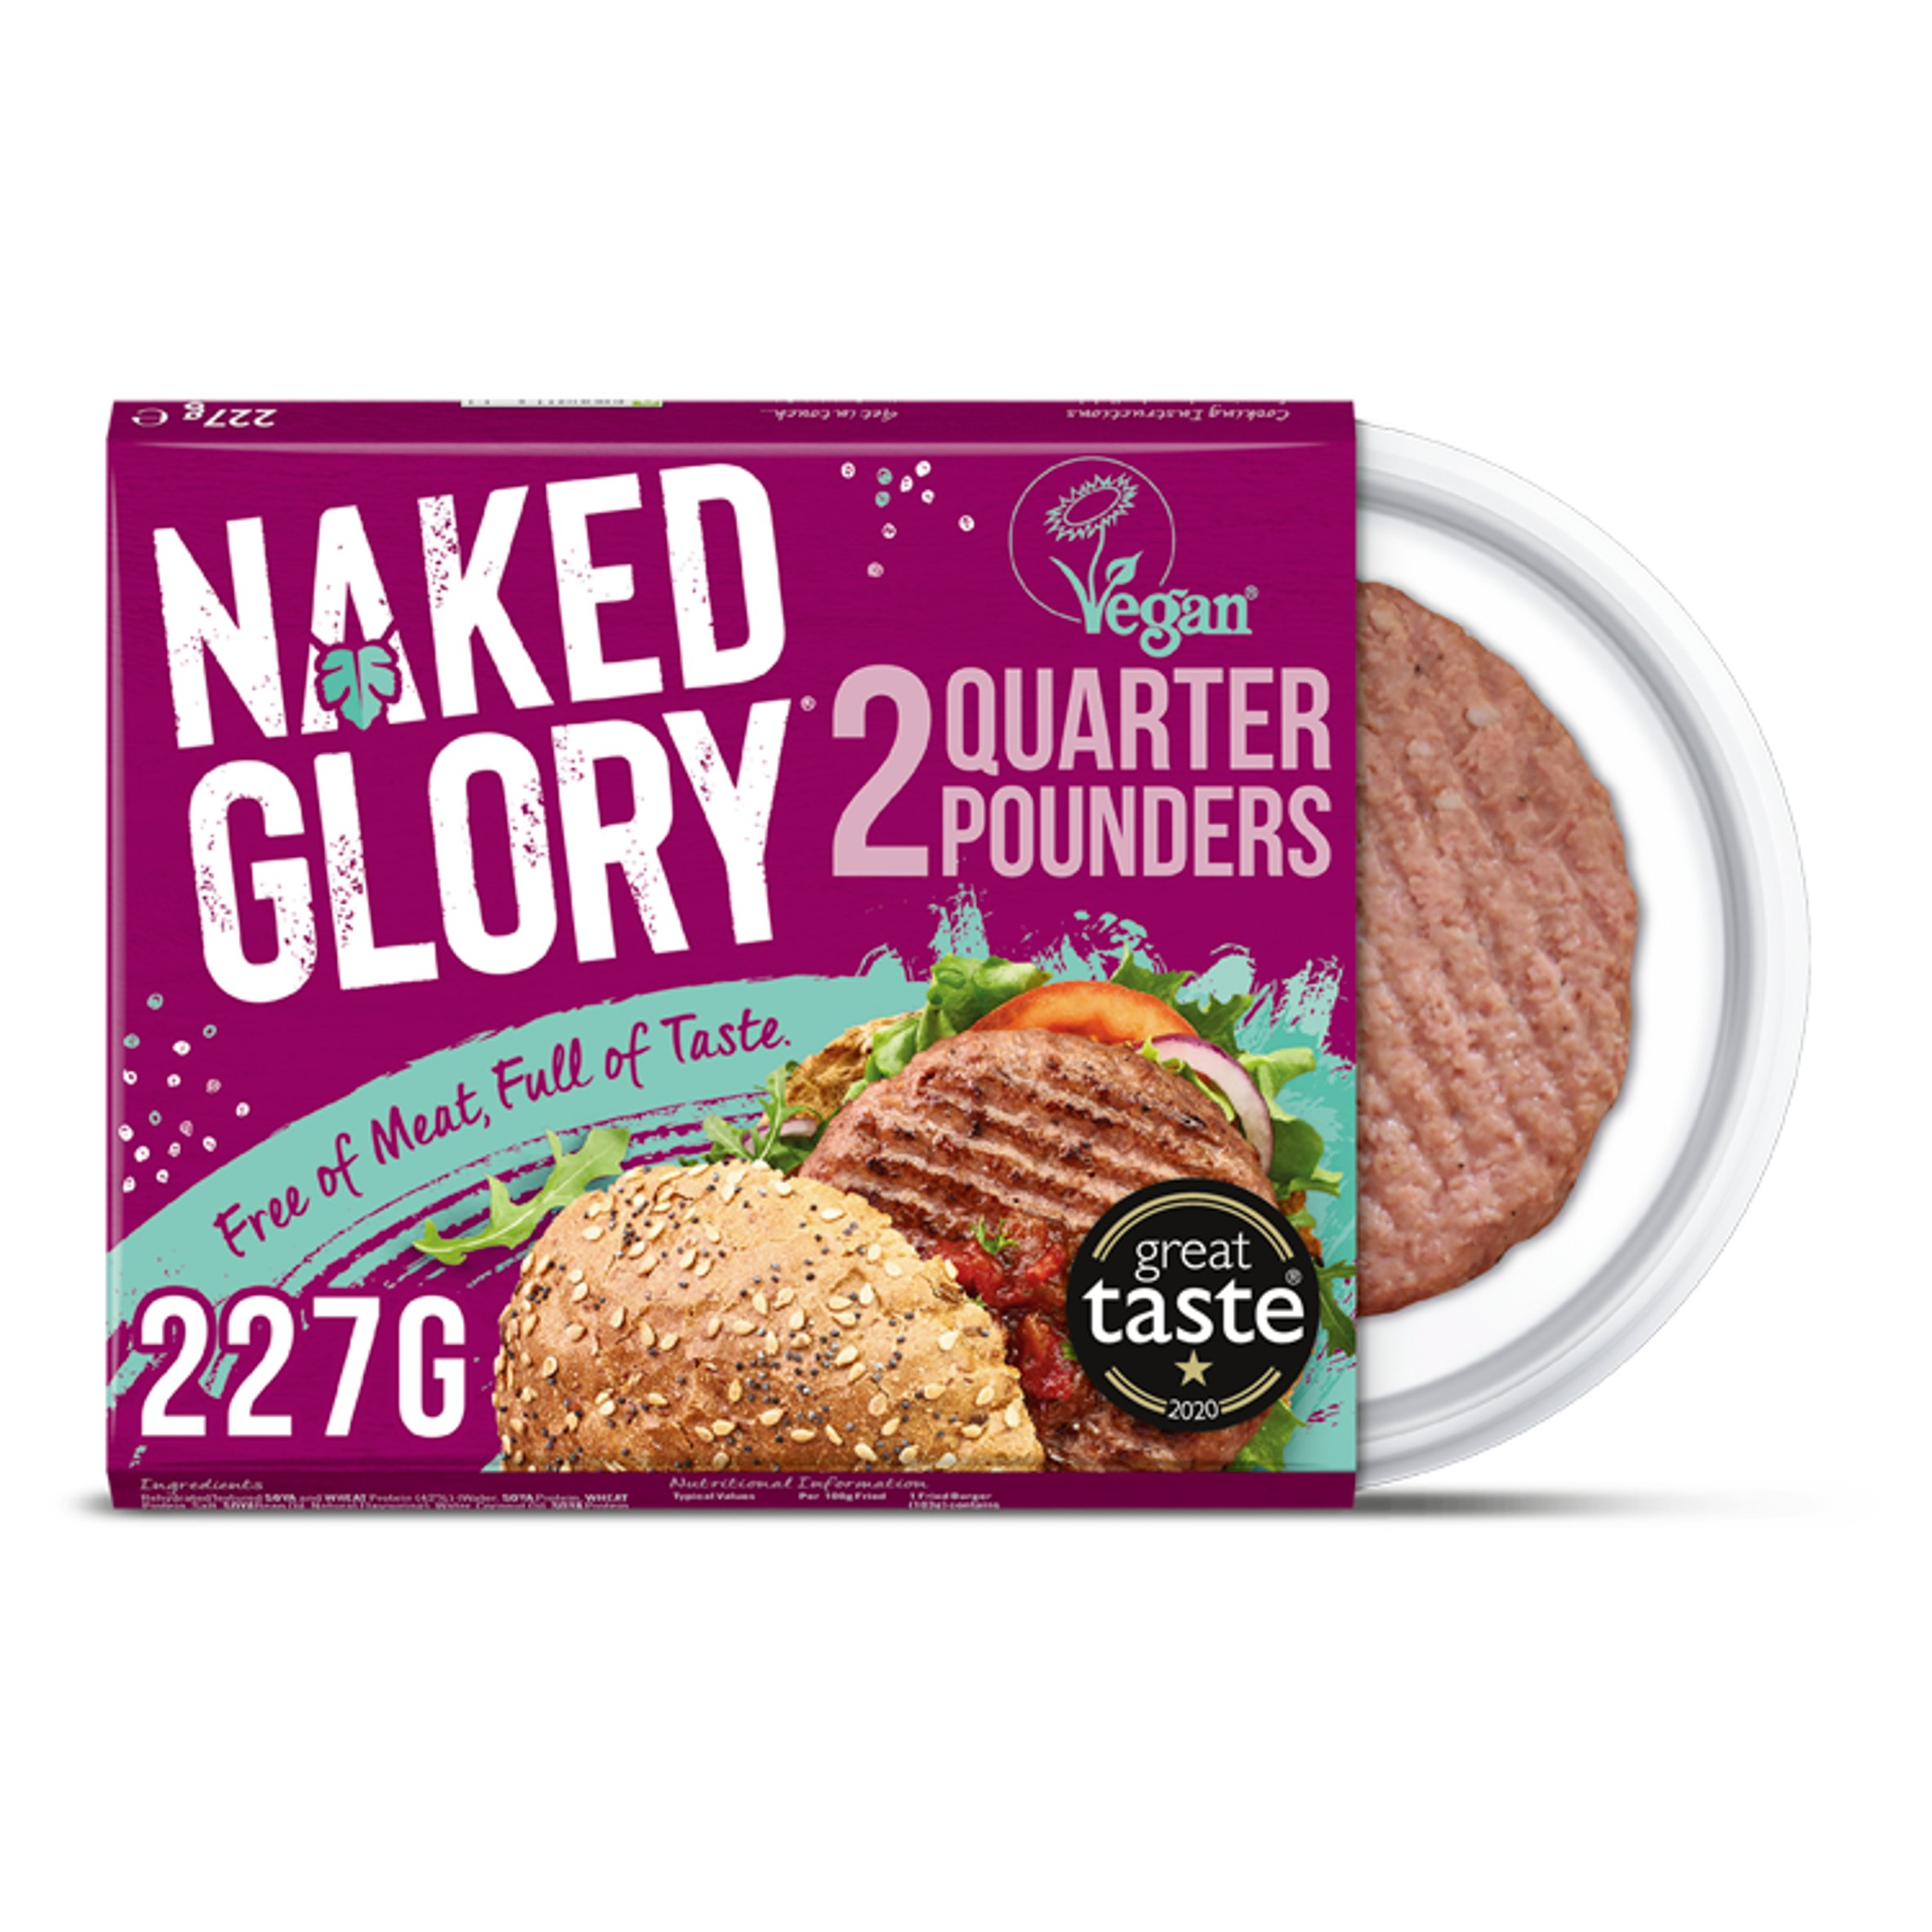 Naked Glory Quarter Pounders 2 Pack 227G